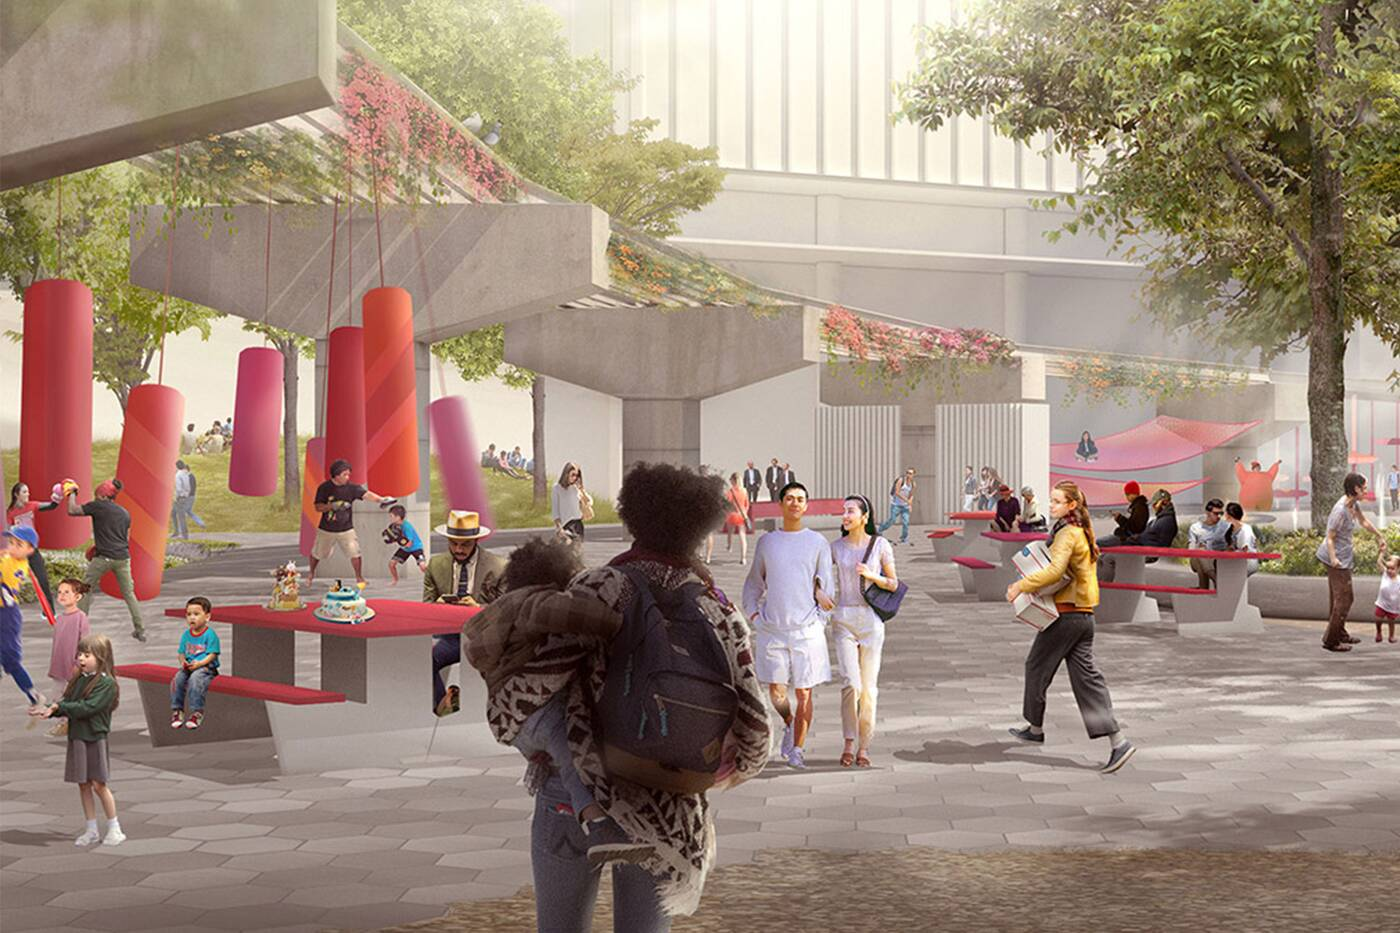 waterfront park design competition